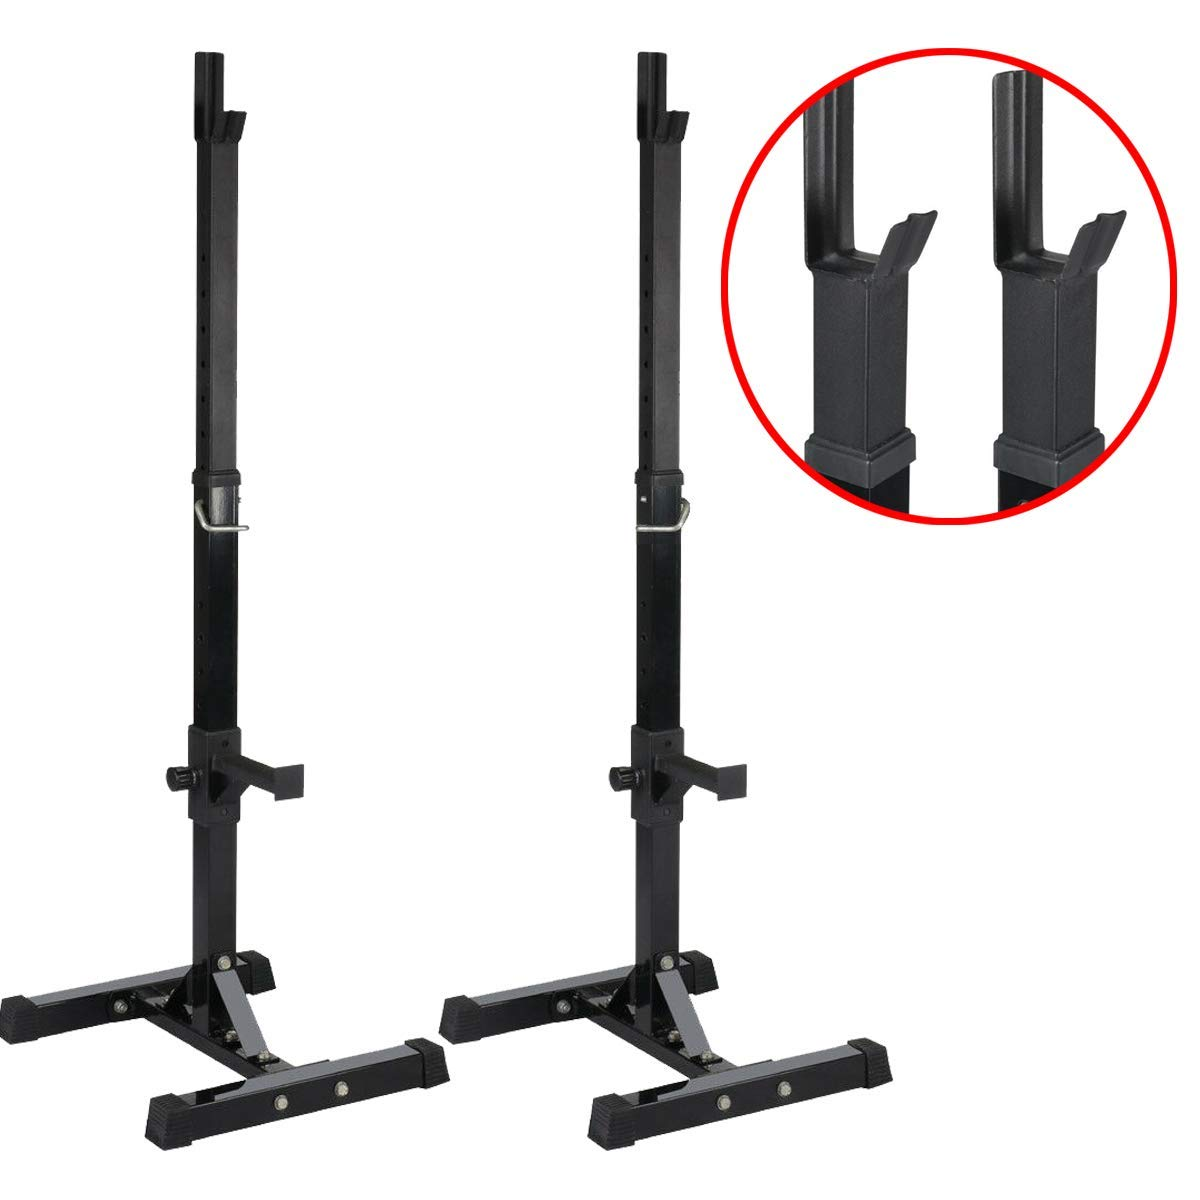 Ramco Steel Portable Squat Power Rack Weight Bench 441LB Capacity | Durable Sturdy Heavy Duty Safety Locking 14 Height Adjustable Suitable Scratch Resistant Easy to Assemble | for Home Gym Exercise by Ramco